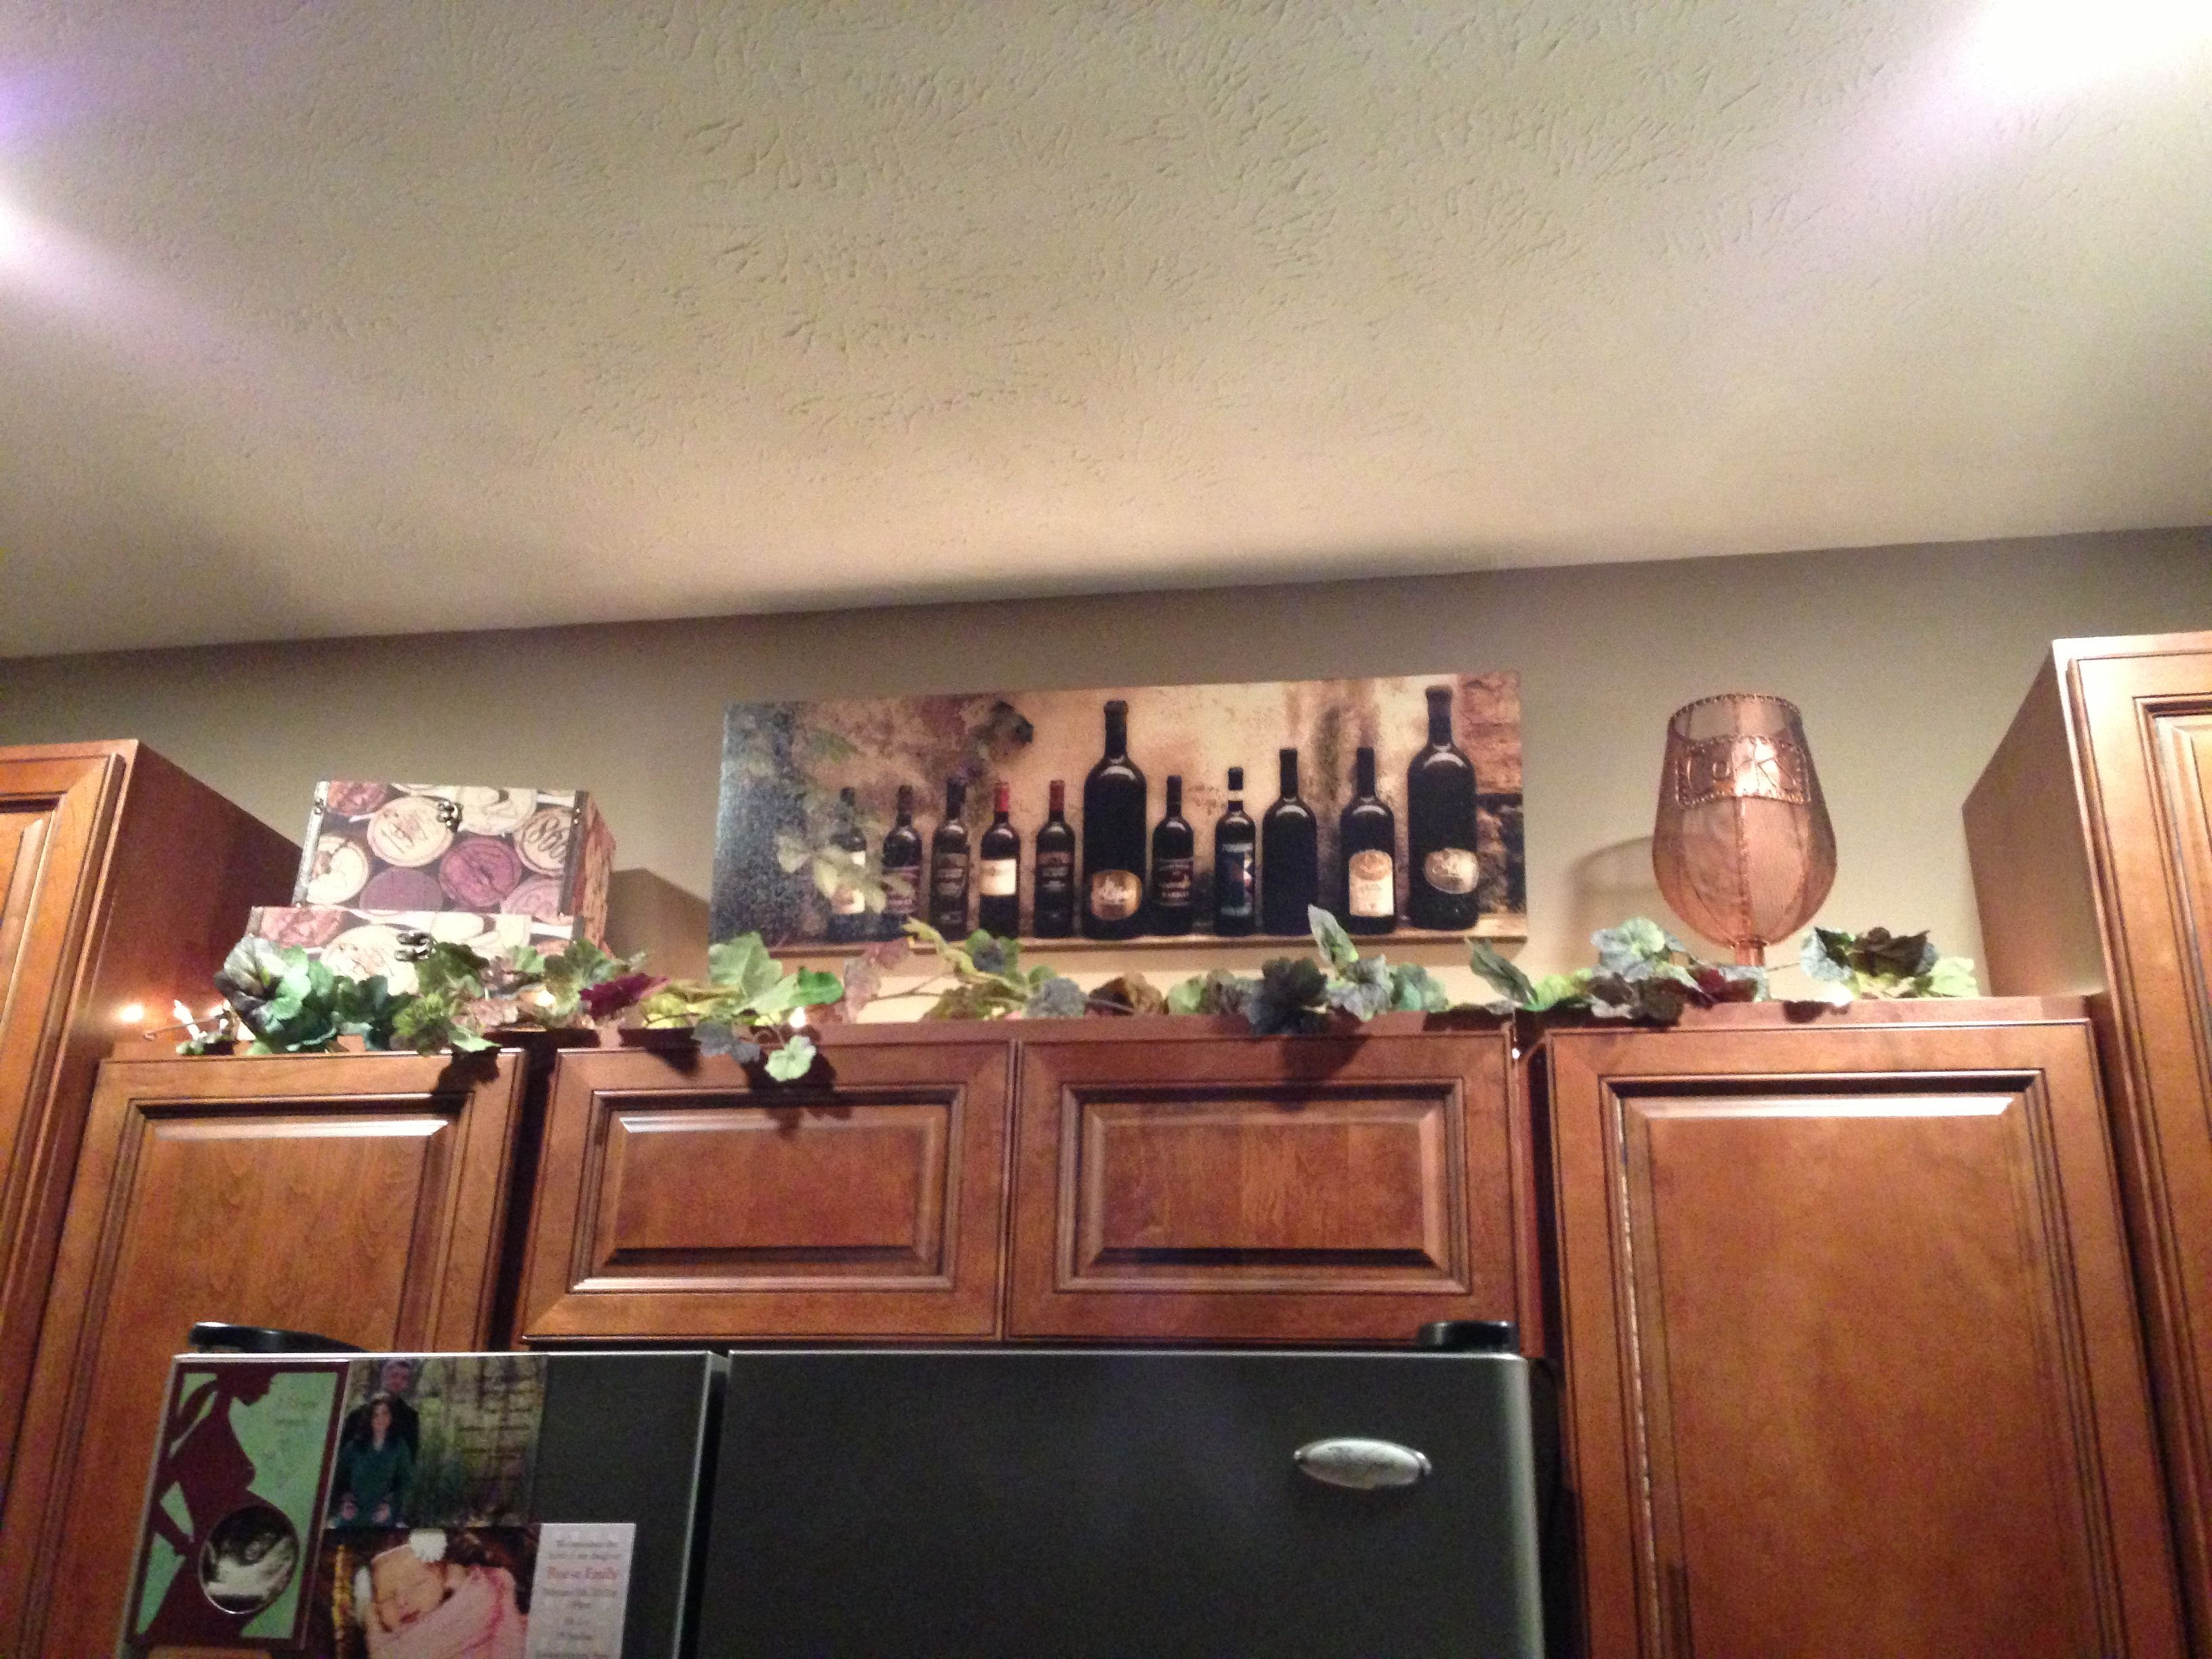 Wine kitchen cabinet decorations  Home decor ideas  Pinterest